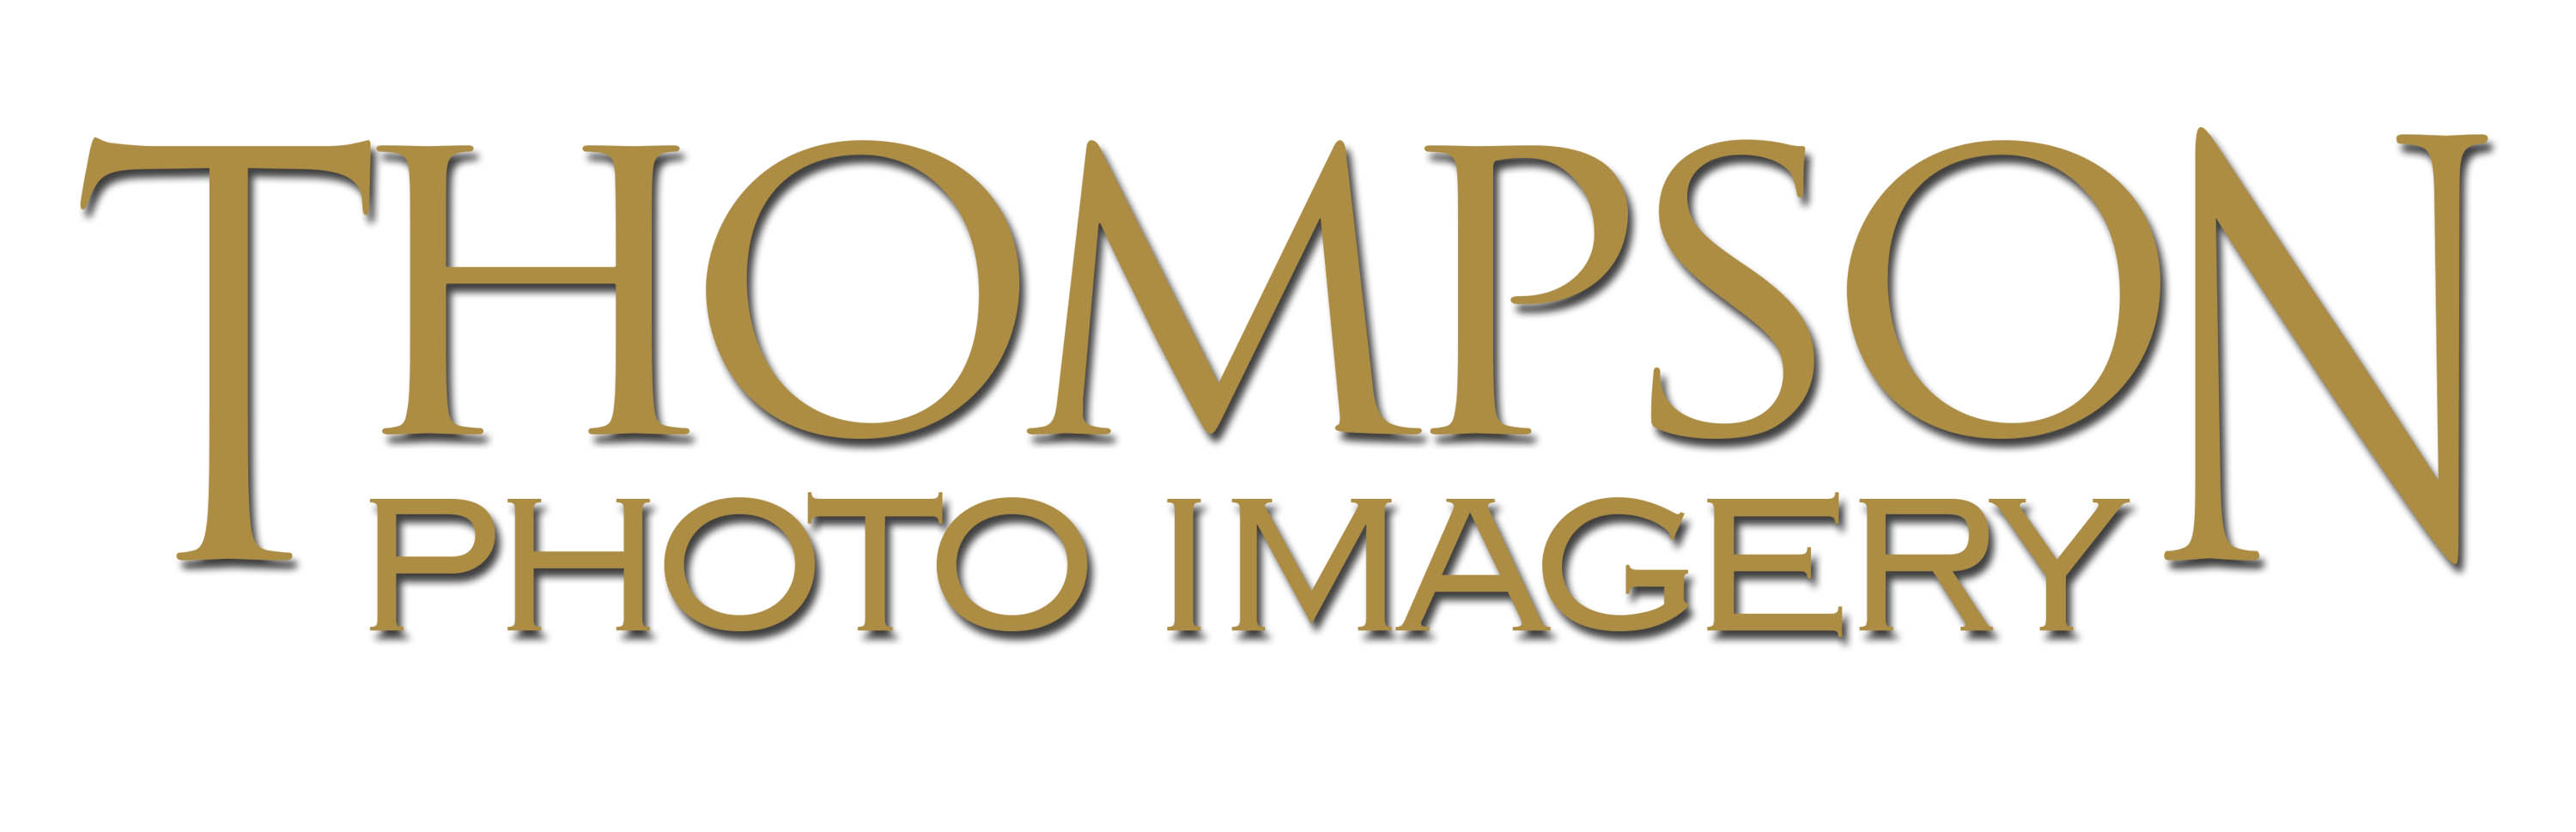 Thompson Photo Imagery logo